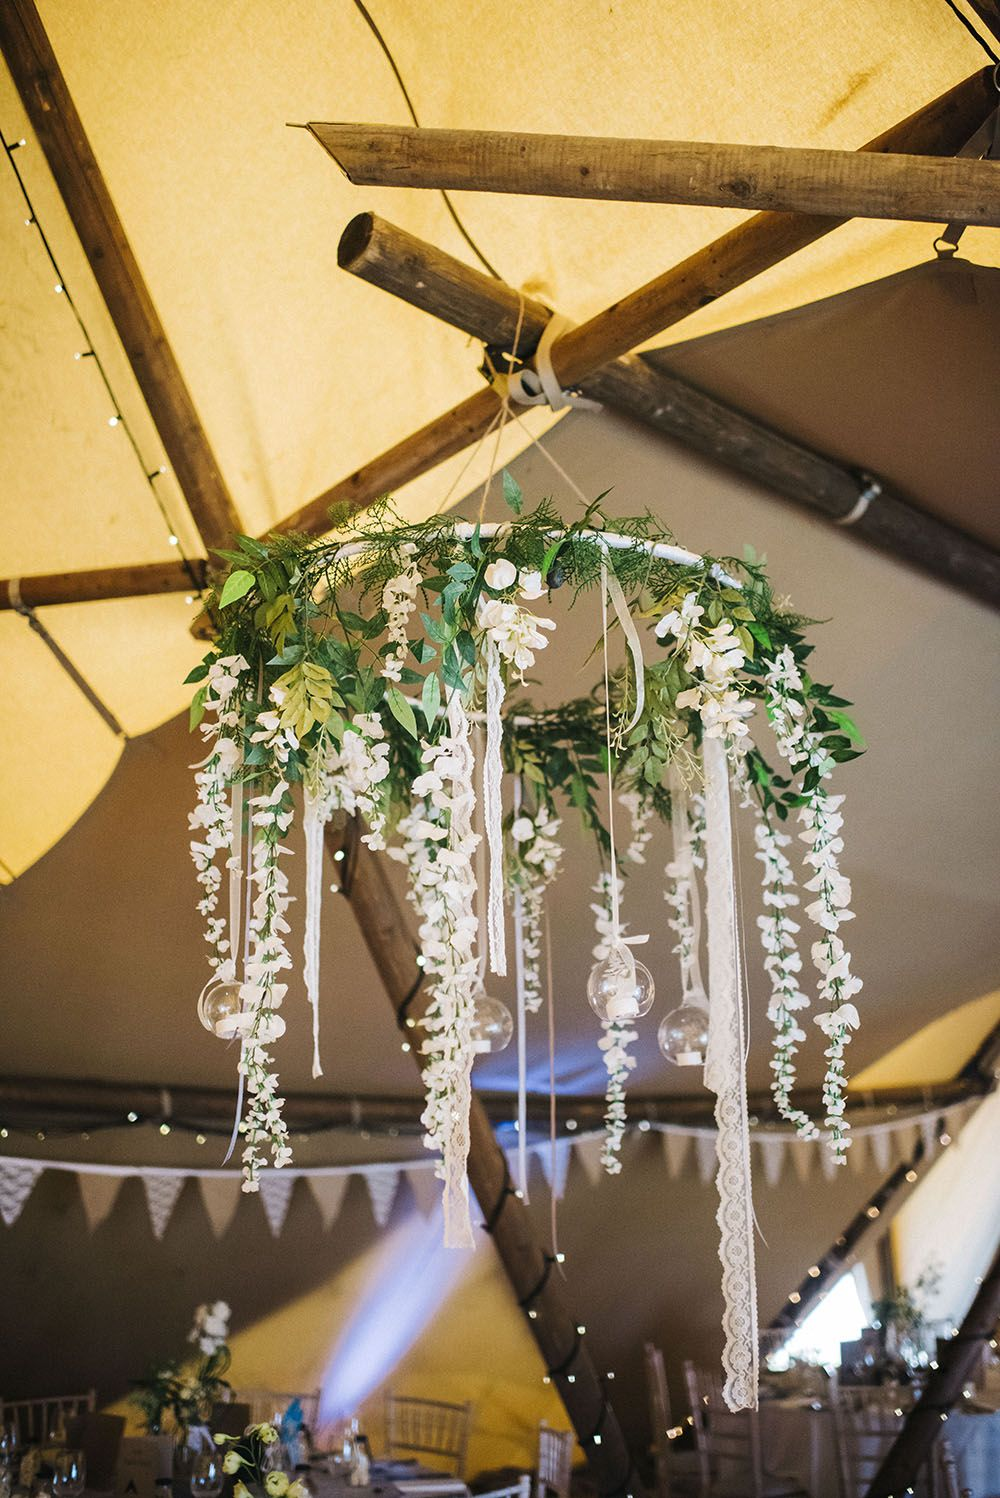 Rustic tipi wedding may the 4th pinterest hanging chandelier hanging chandelier rustic wedding decor rustic tipi wedding justin alexander big chief tipis aloadofball Images